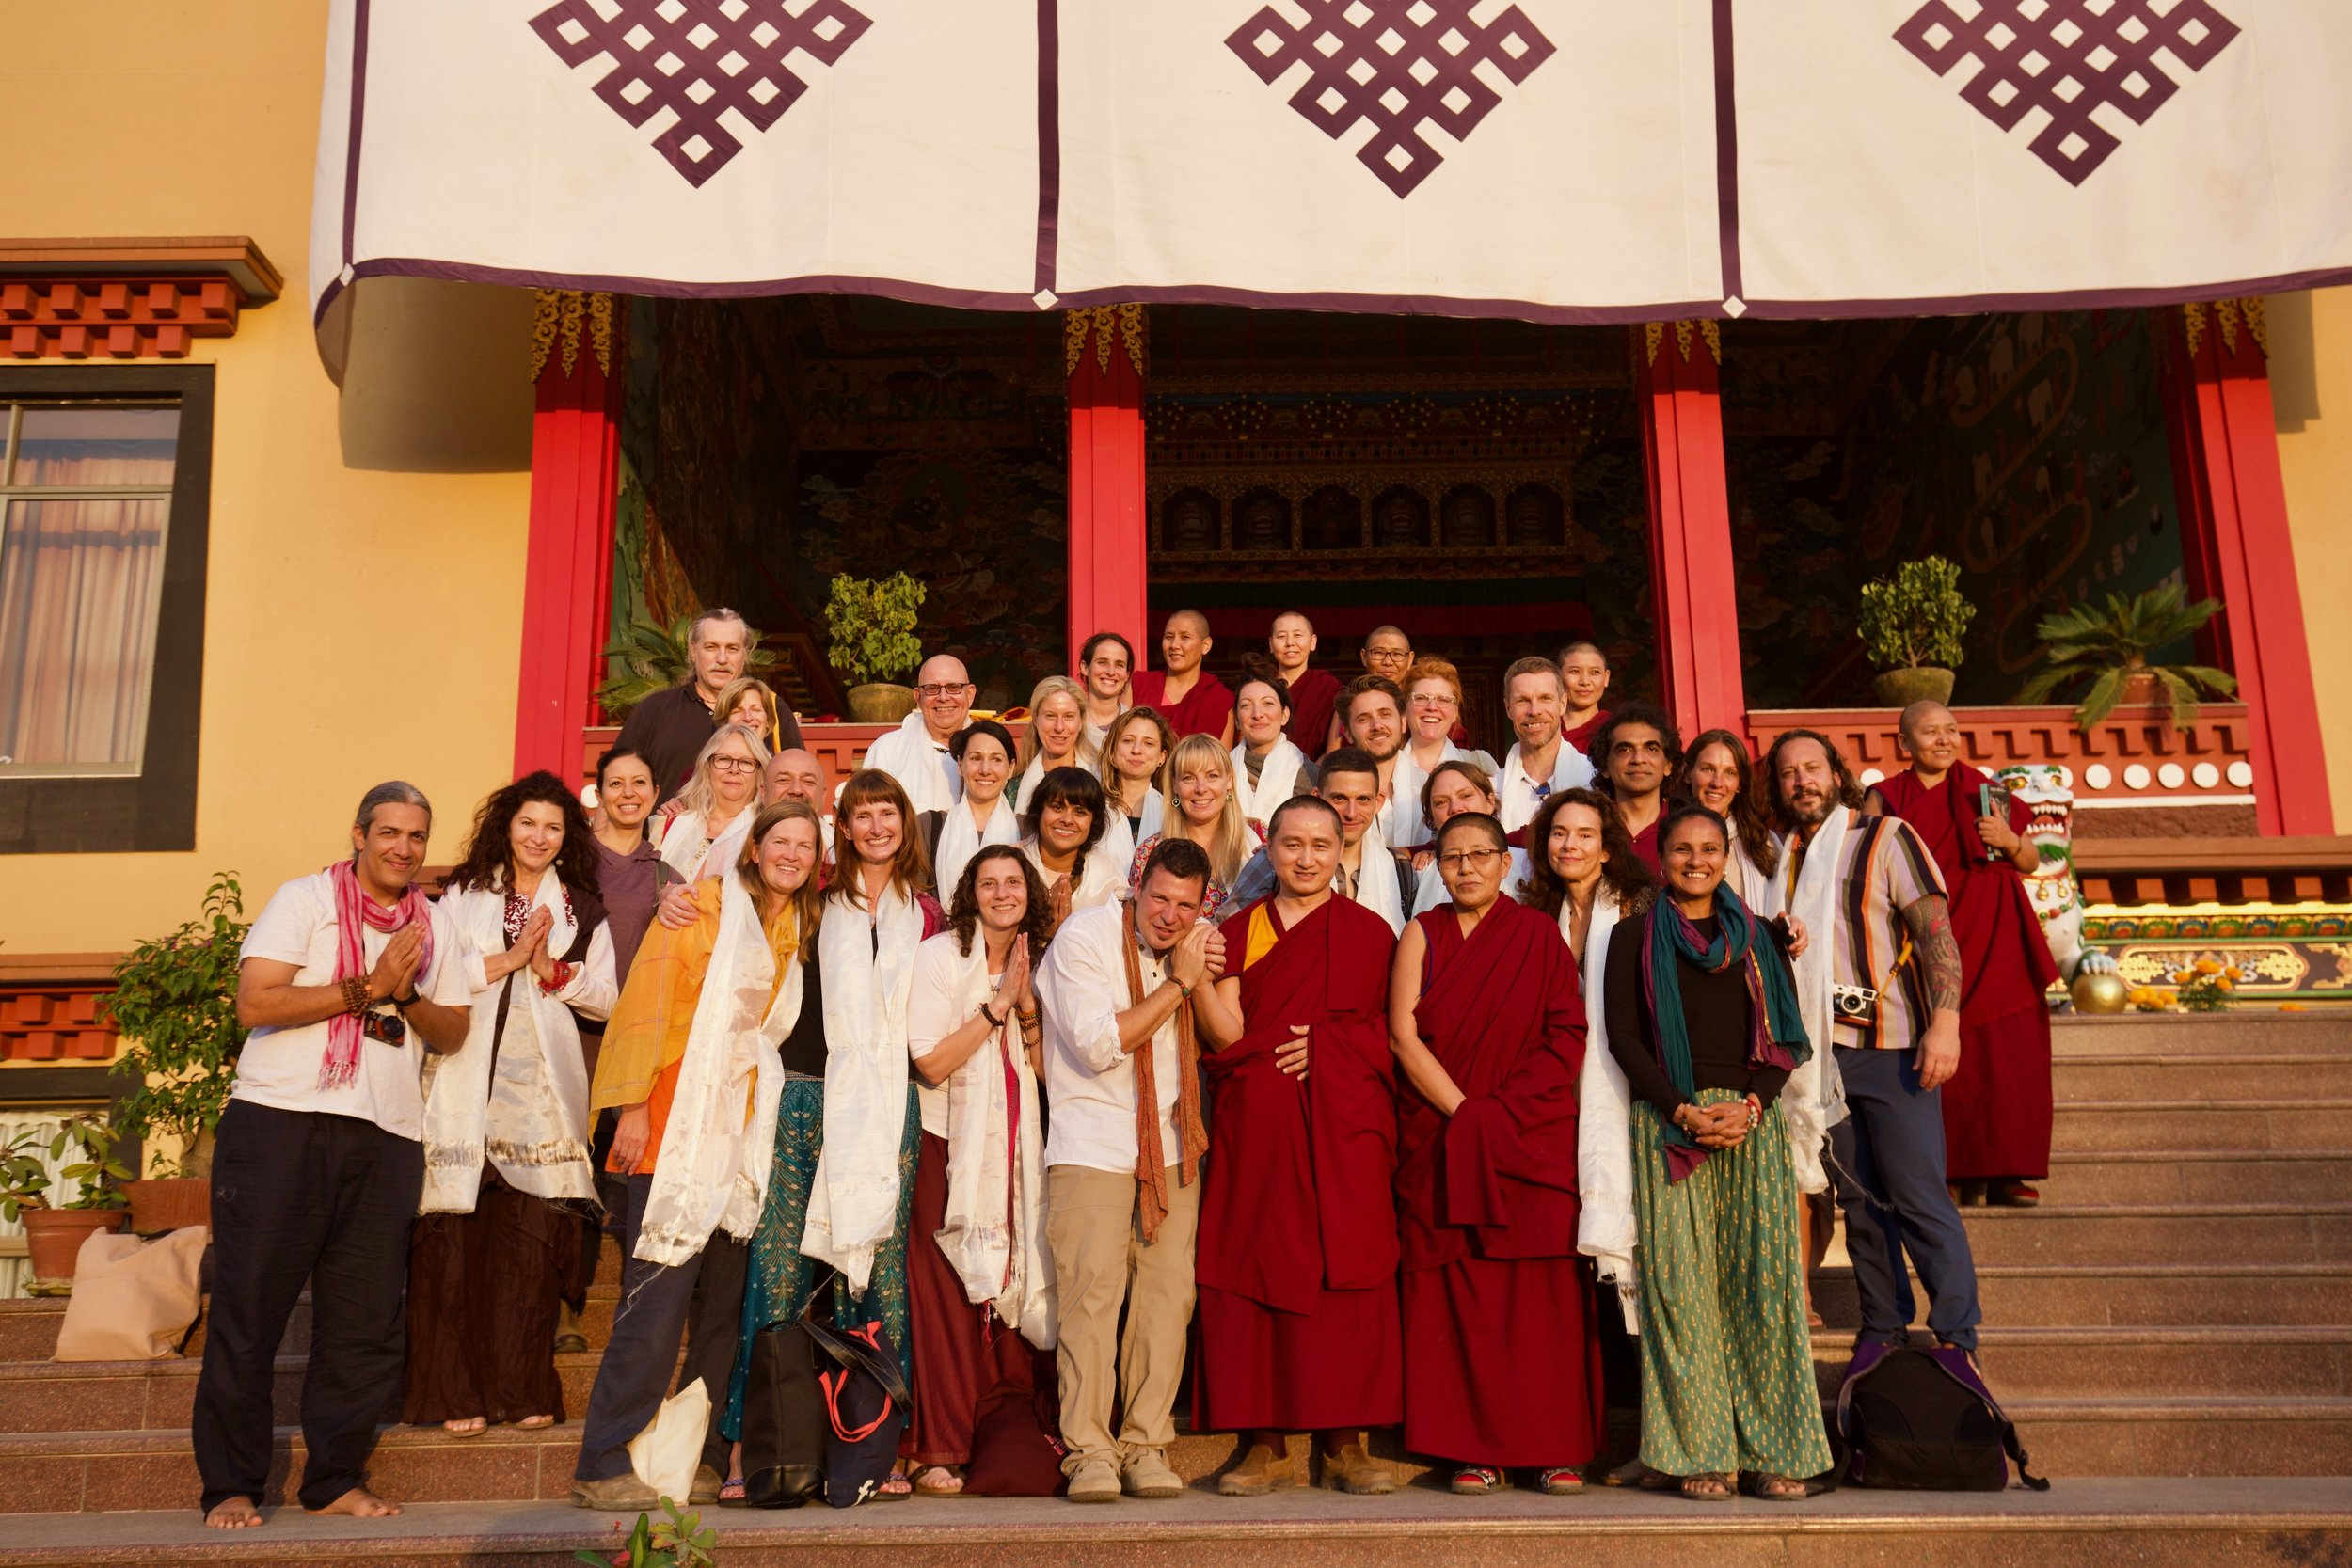 Power Places of Kathmandu - During our second group pilgrimage 32 pilgrims spent the first week visiting the tantric power places of the Kathmandu Valley and the second week in retreat with Geshe Tenzin Zopa at Kopan Monastery.